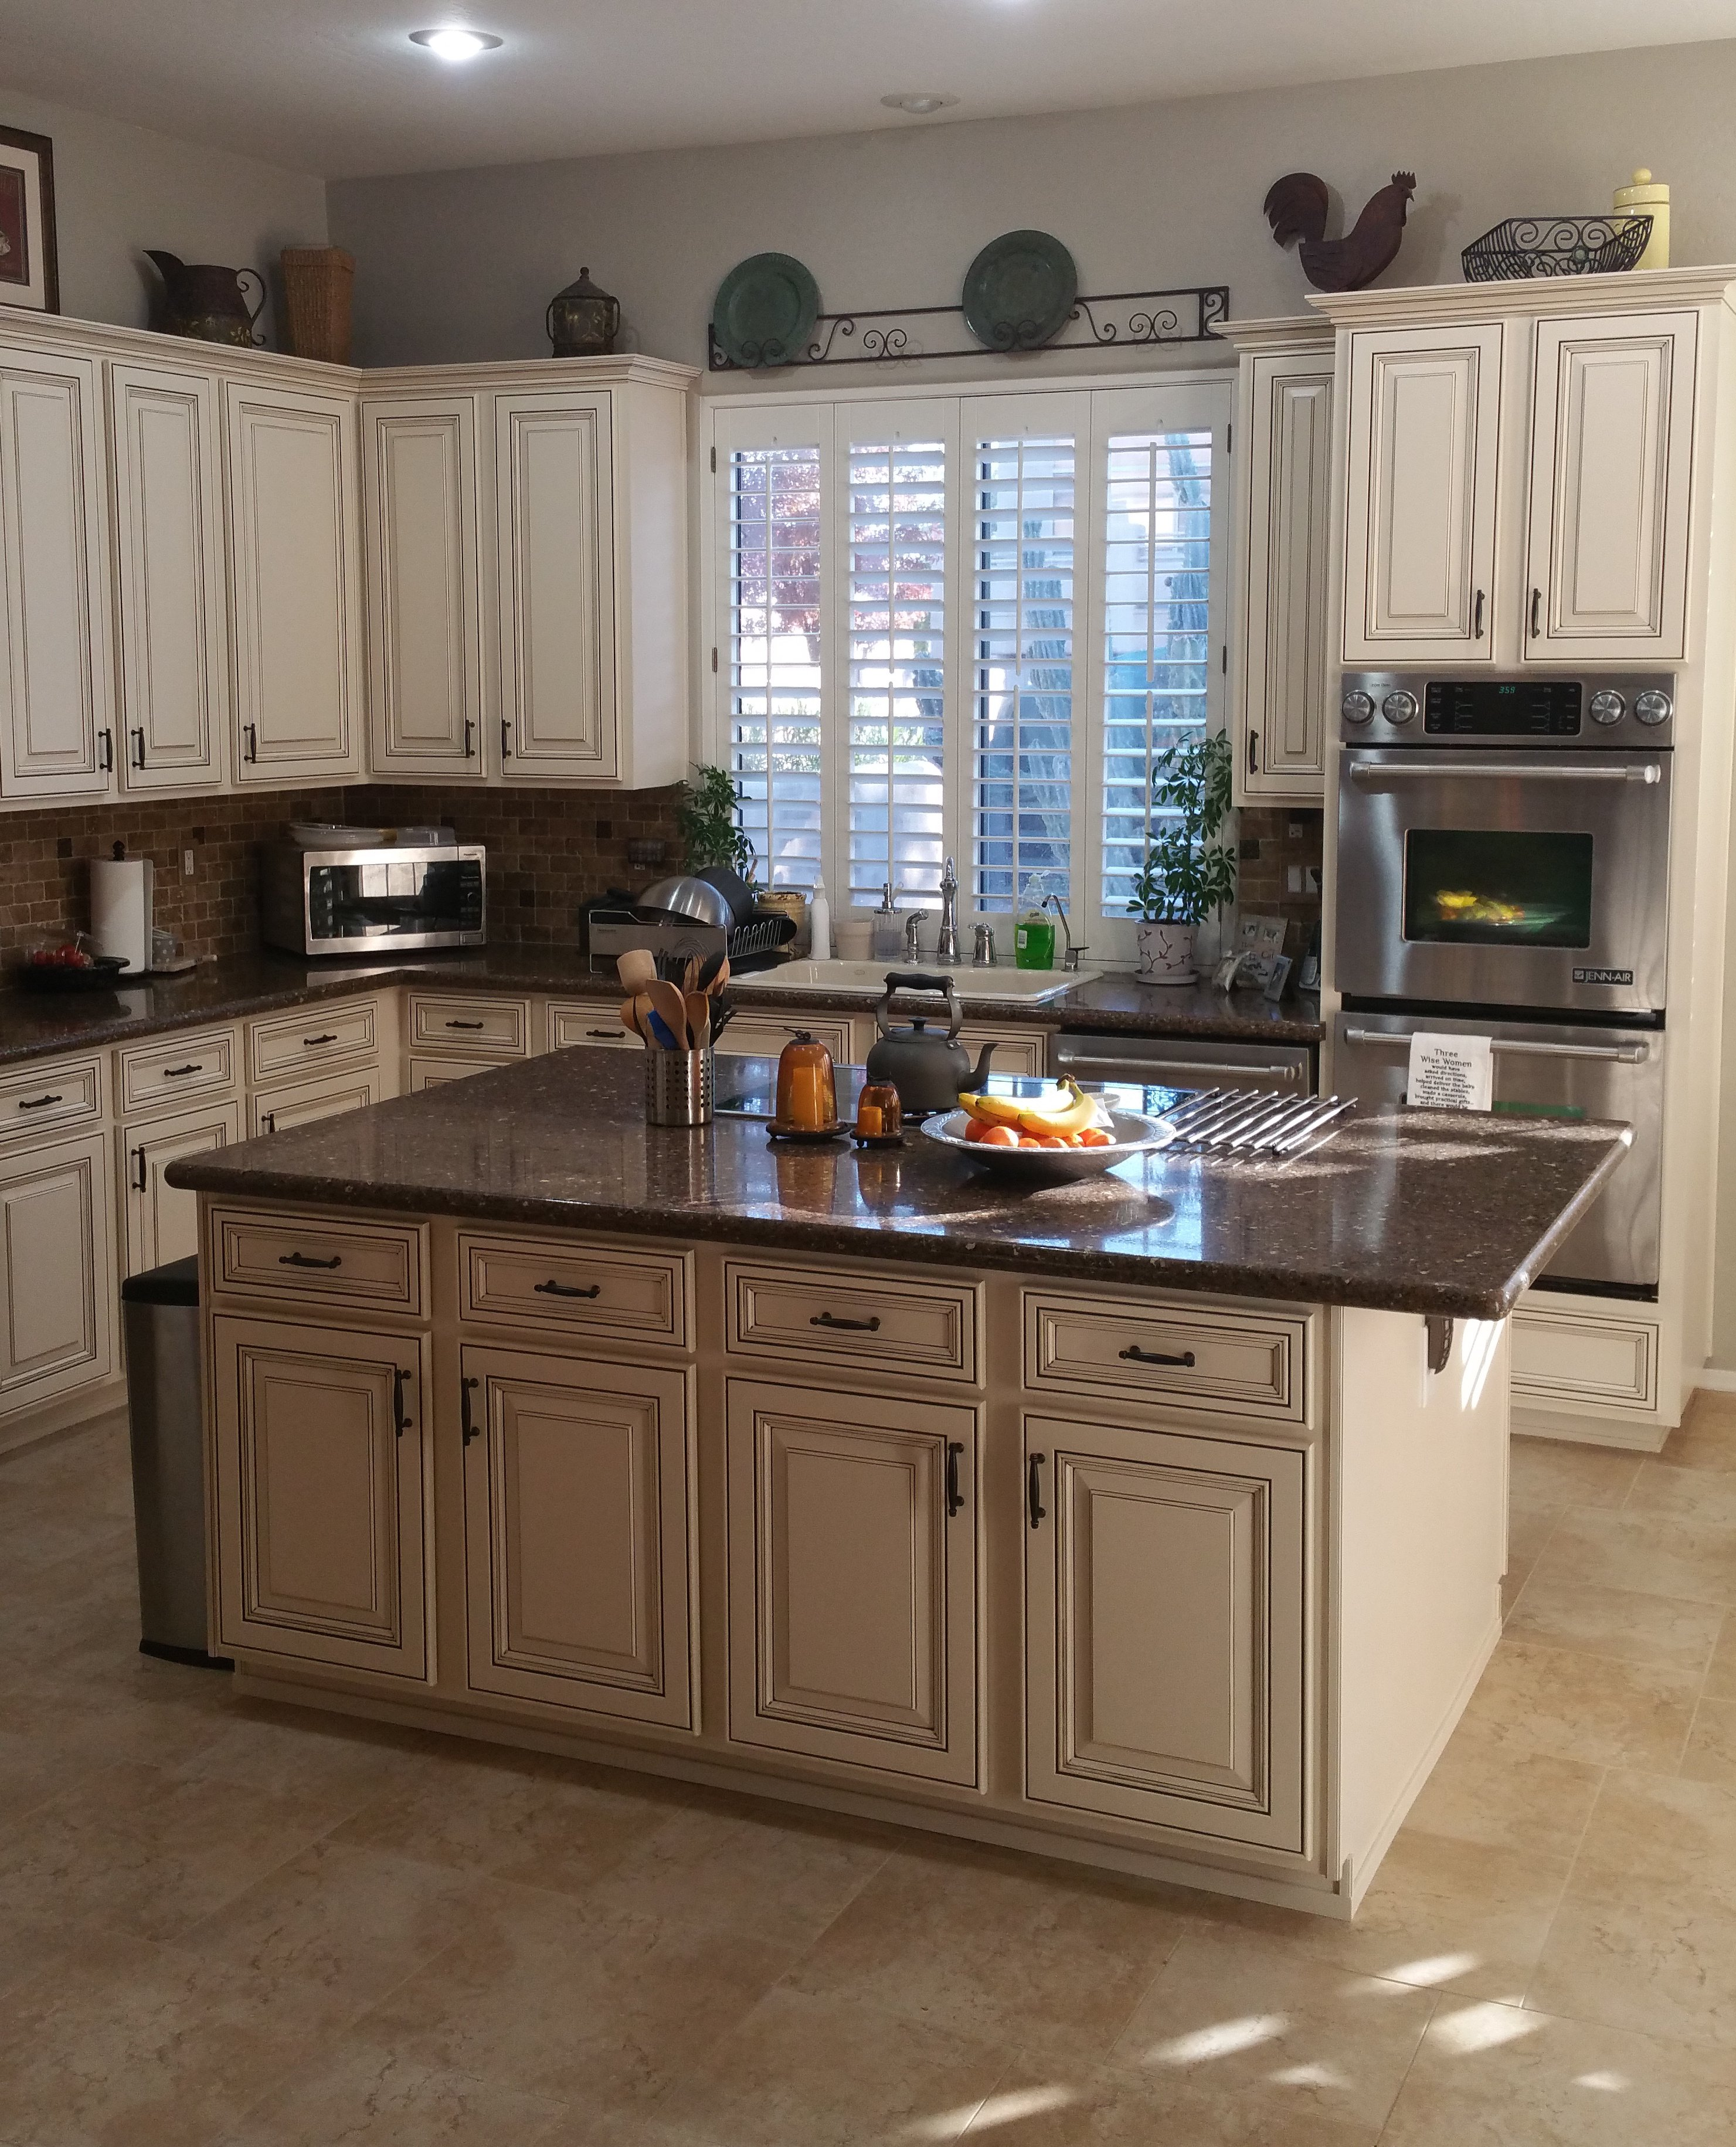 Kitchen Cabinet Restoration Ideas: What To Look For In A Kitchen Refacing & Refinishing Company